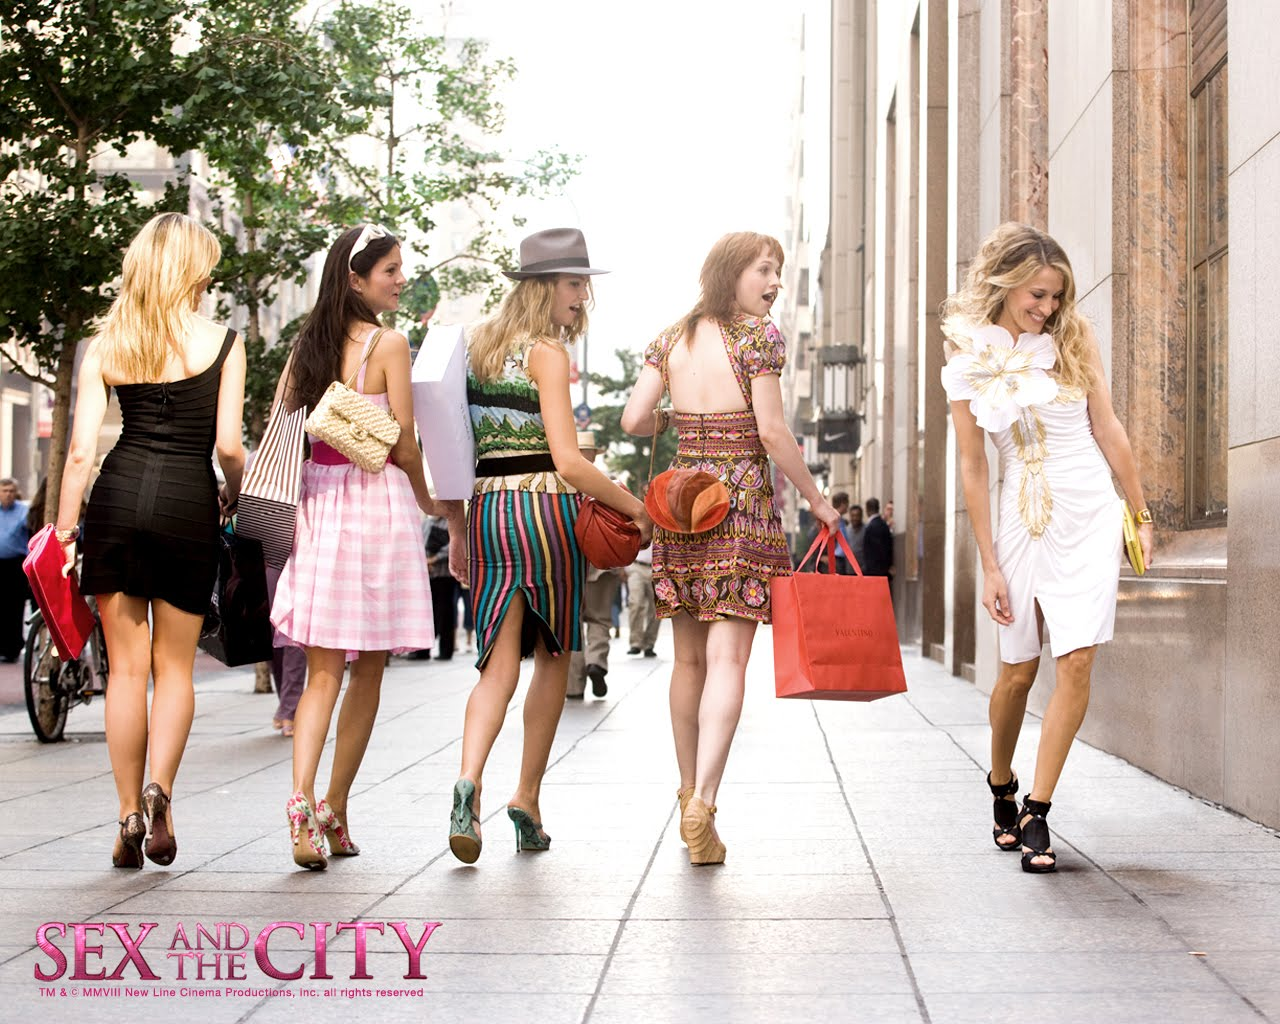 http://1.bp.blogspot.com/_BLSFAfCau4I/TQa9gAUwdiI/AAAAAAAAAB4/qIbWyfw6E0w/s1600/Sarah_Jessica_Parker_in_Sex_and_the_City%2B_The_Movie_Wallpaper_11_1024.jpg